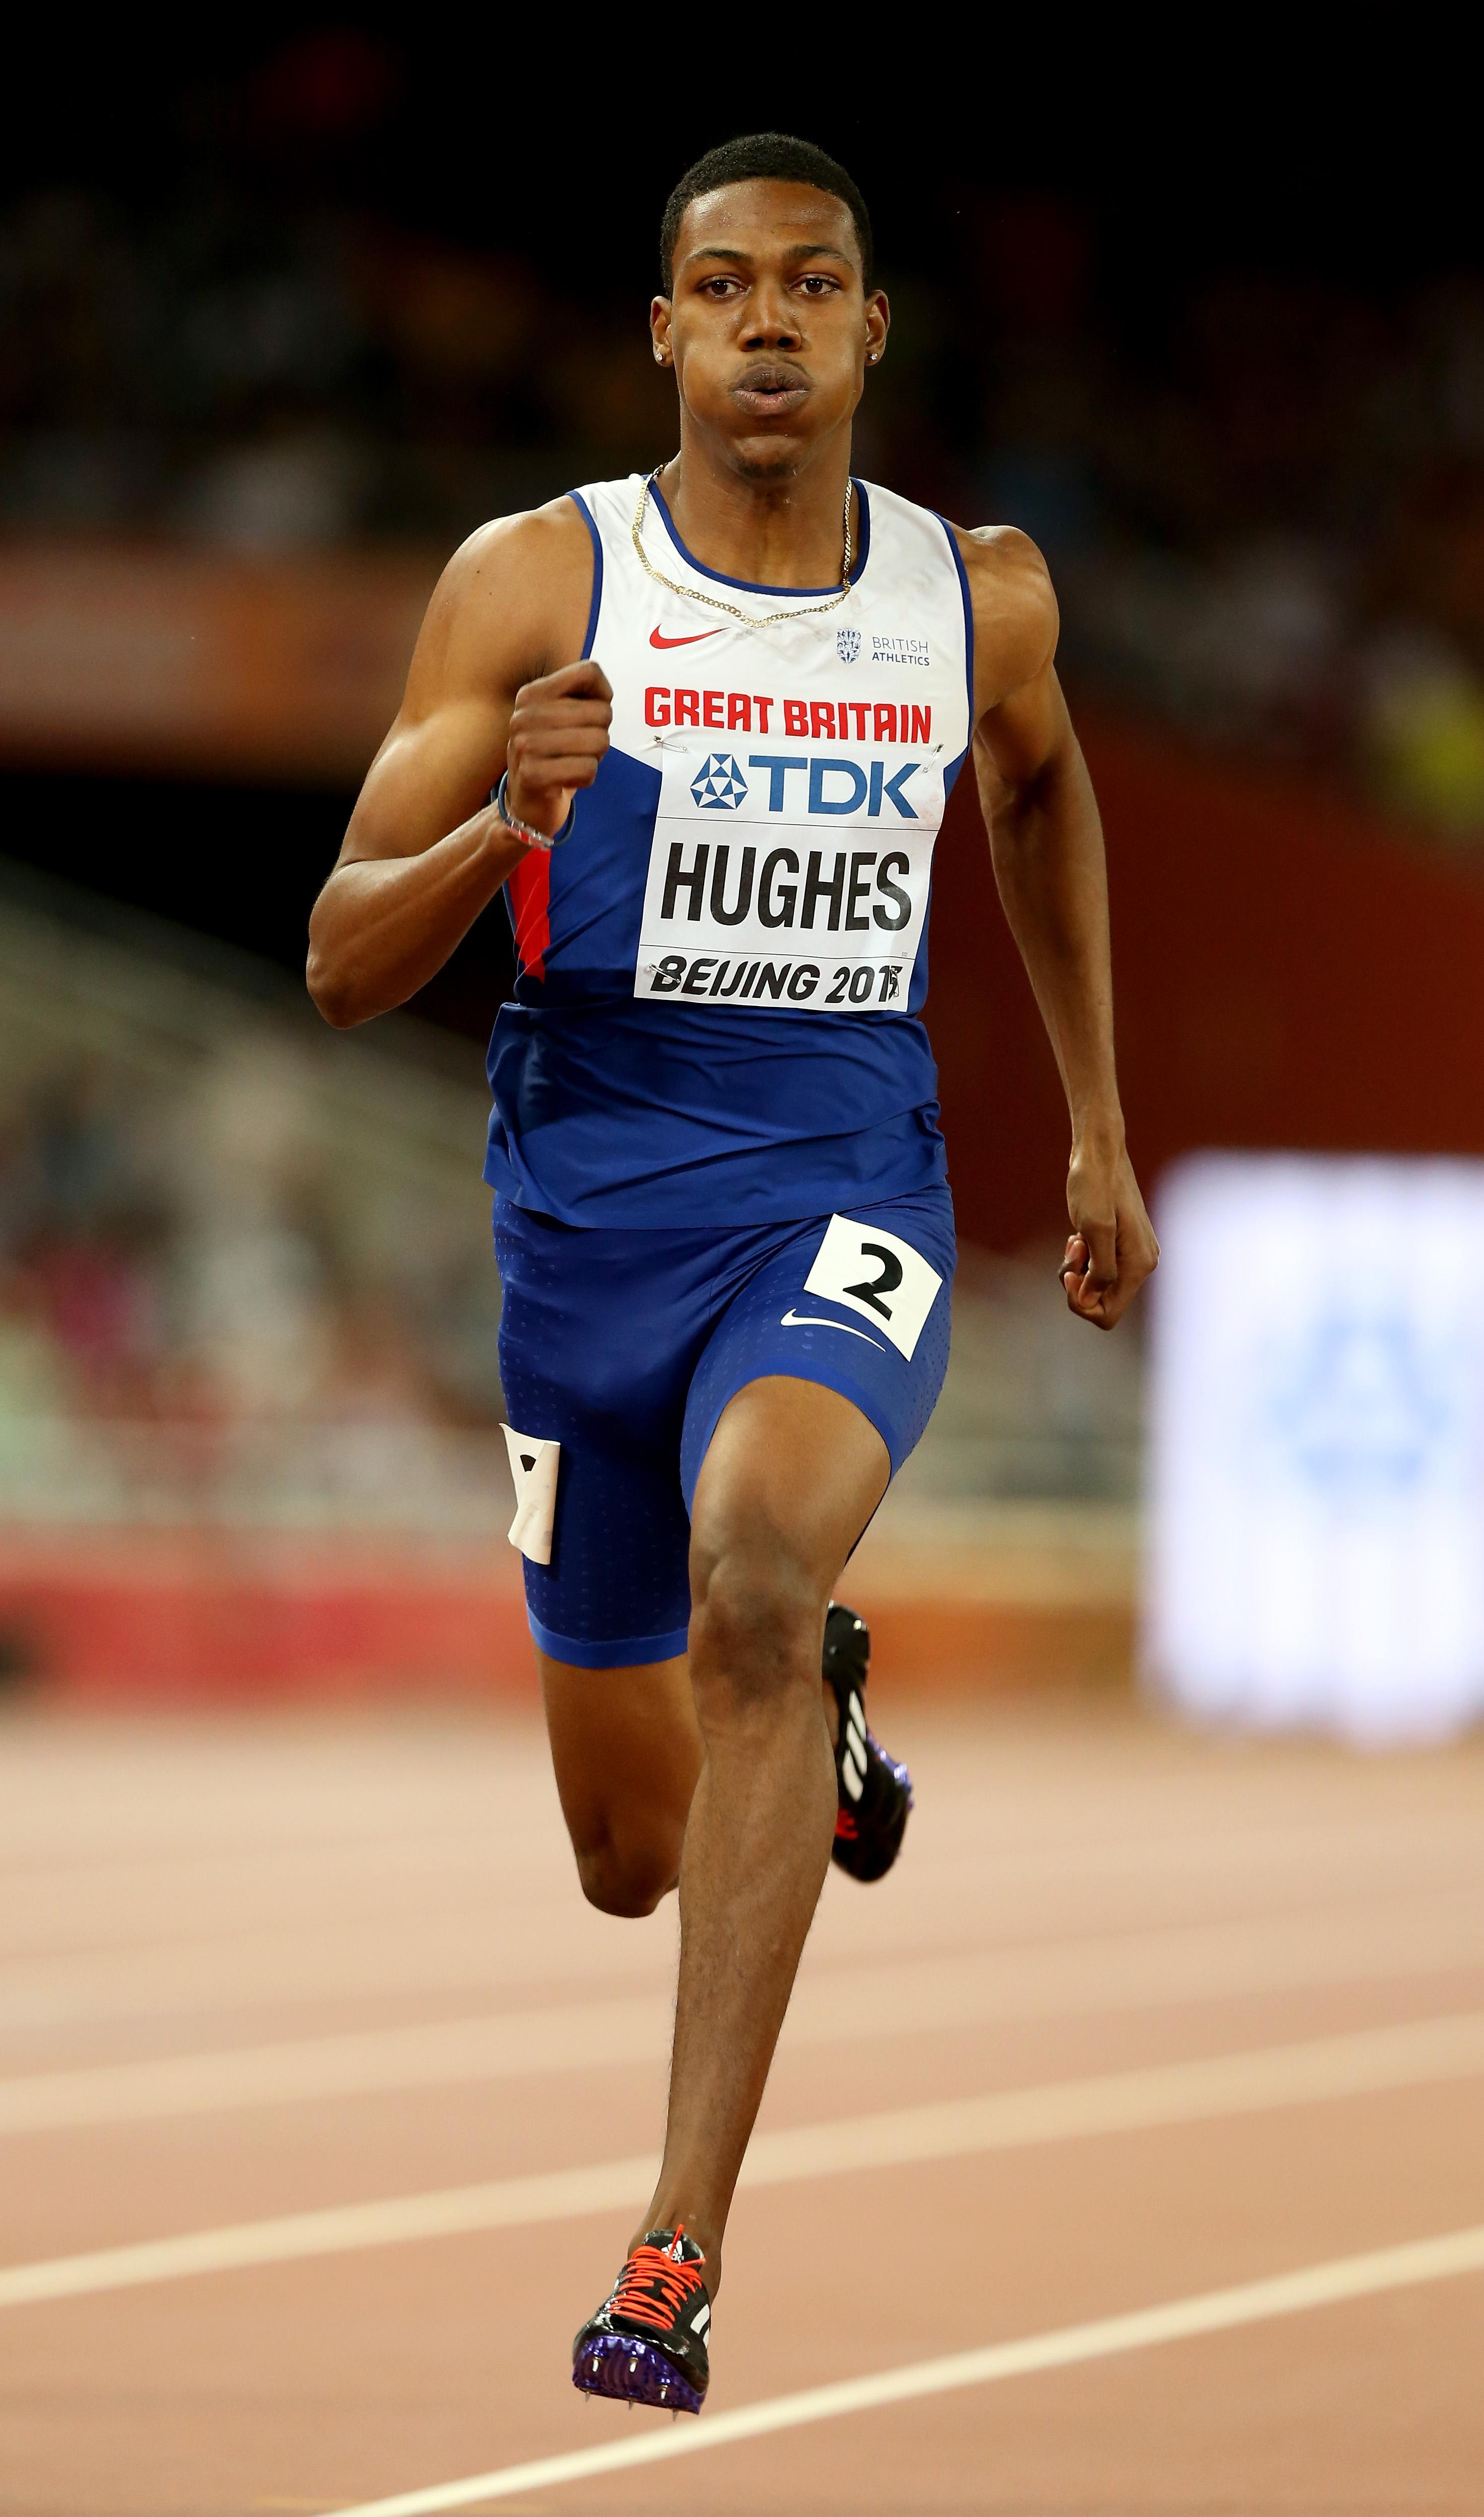 Zharnel Hughes is now second on the all-time list for quickest times run by a British sprinter